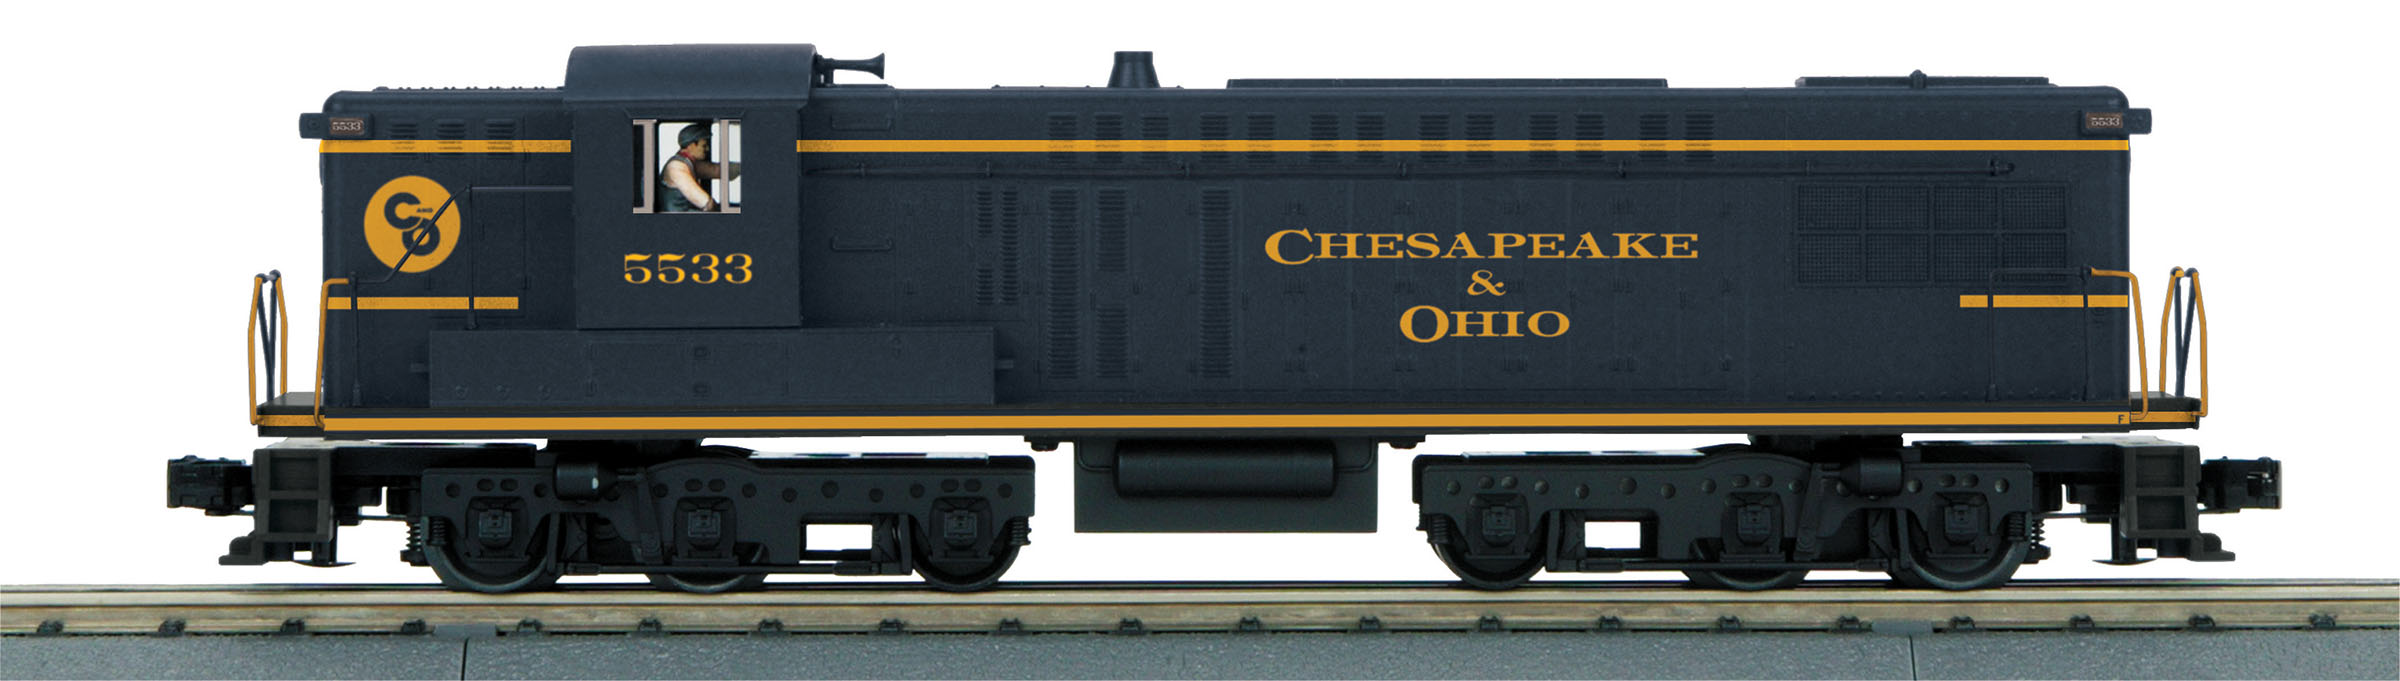 MTH 30205891 O-27 AS-16 w/PS3, C&O #5533 507 -30205891